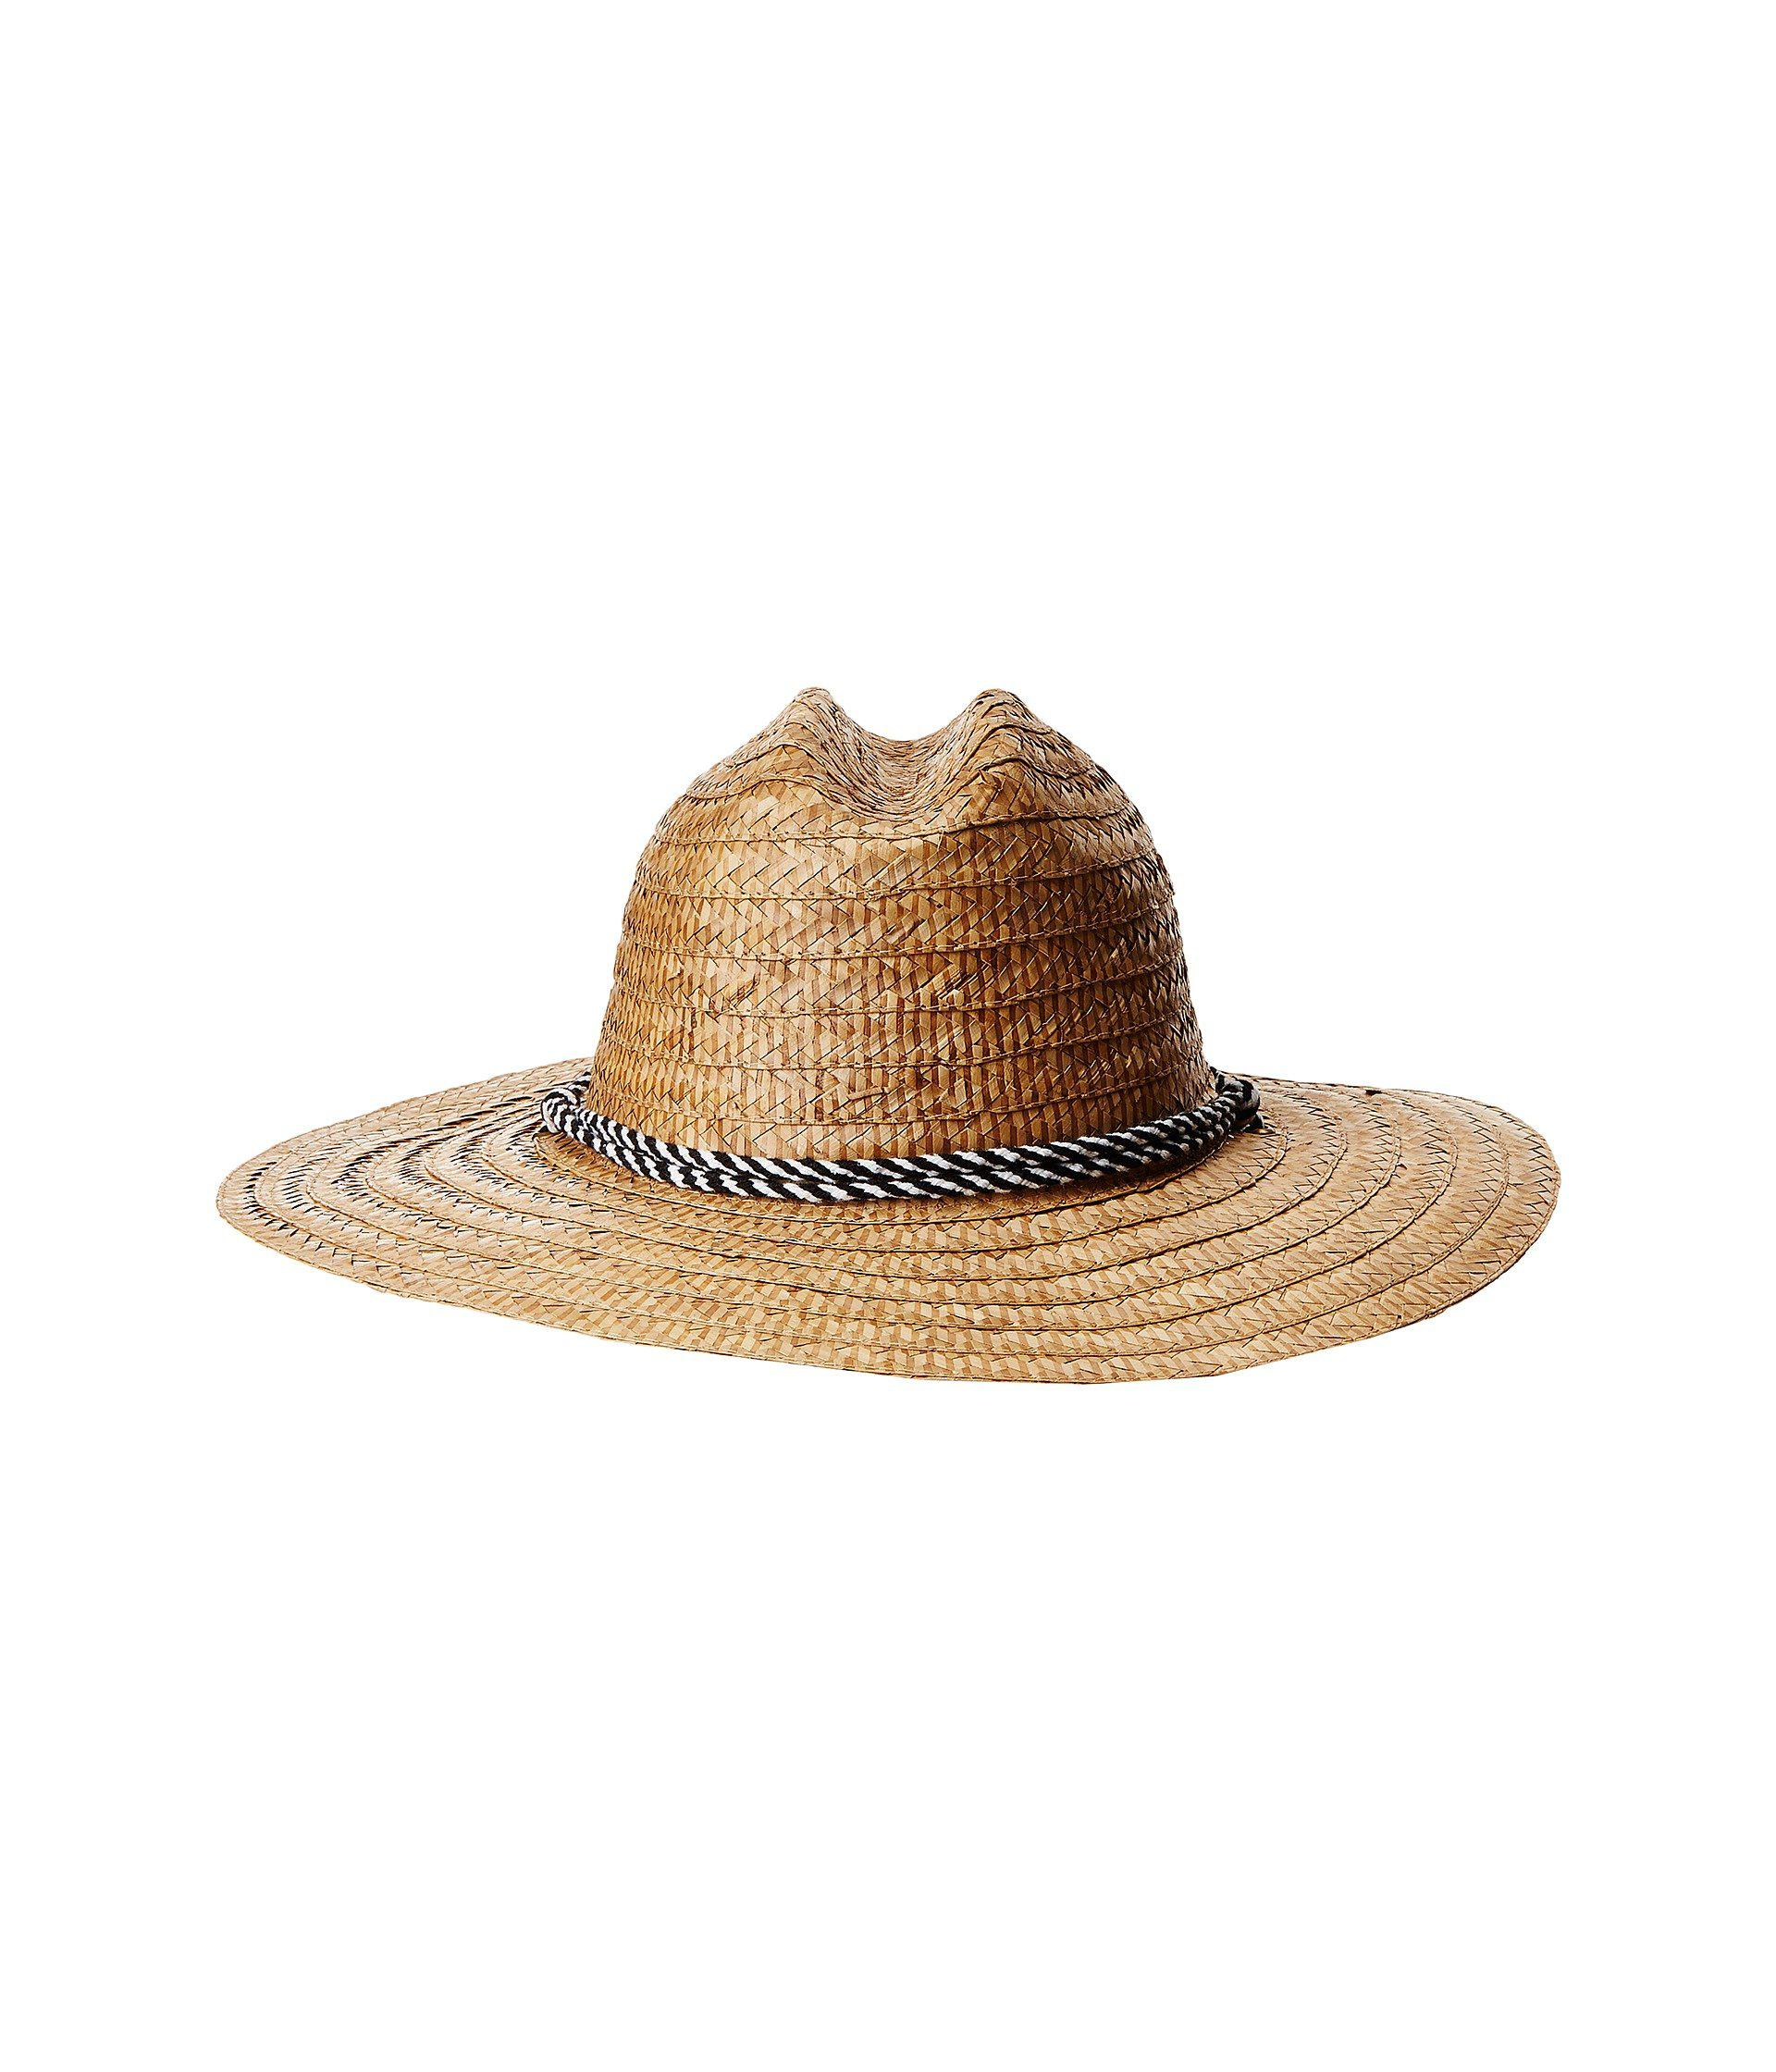 122dcc5b1d0c7 San Diego Hat Company. Men s Kwai Braided Straw Lifeguard (natural) Caps